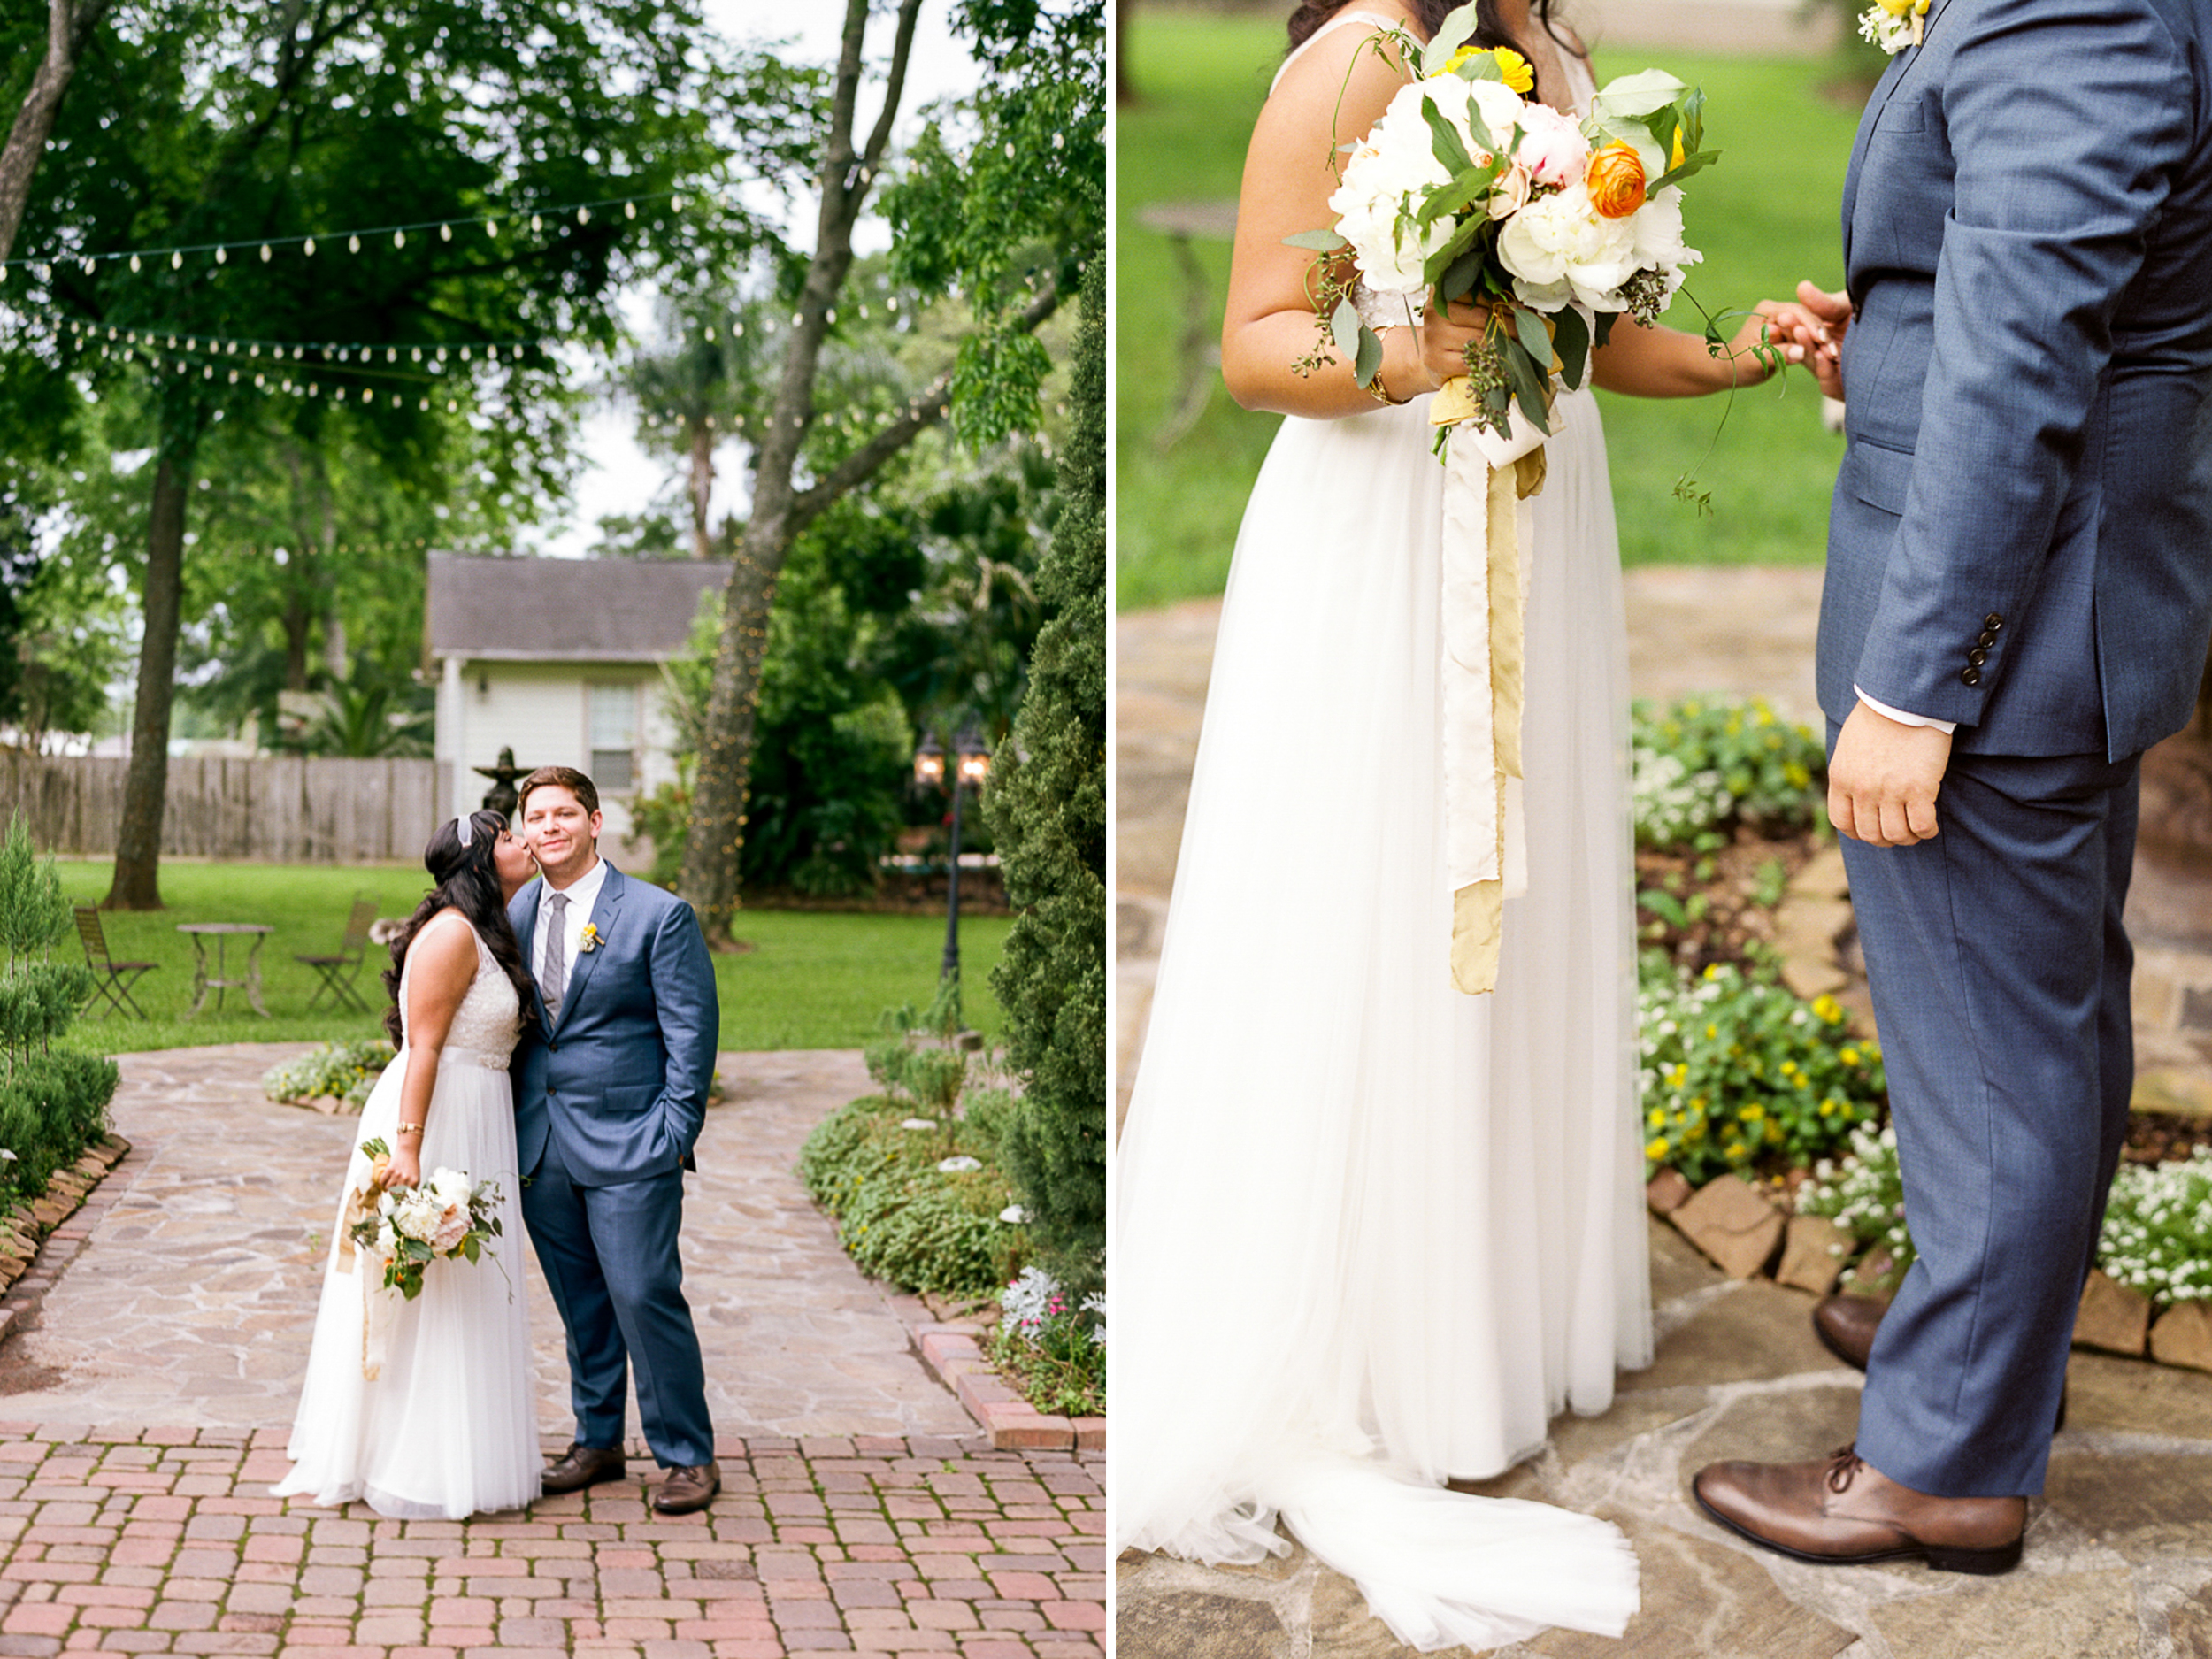 Dana Fernandez Photography Houston Texas Destination Photographer Film Ruffled Blog Wedding Bridal First Look Featured Photography Oak Tree Manor Houston-31.jpg